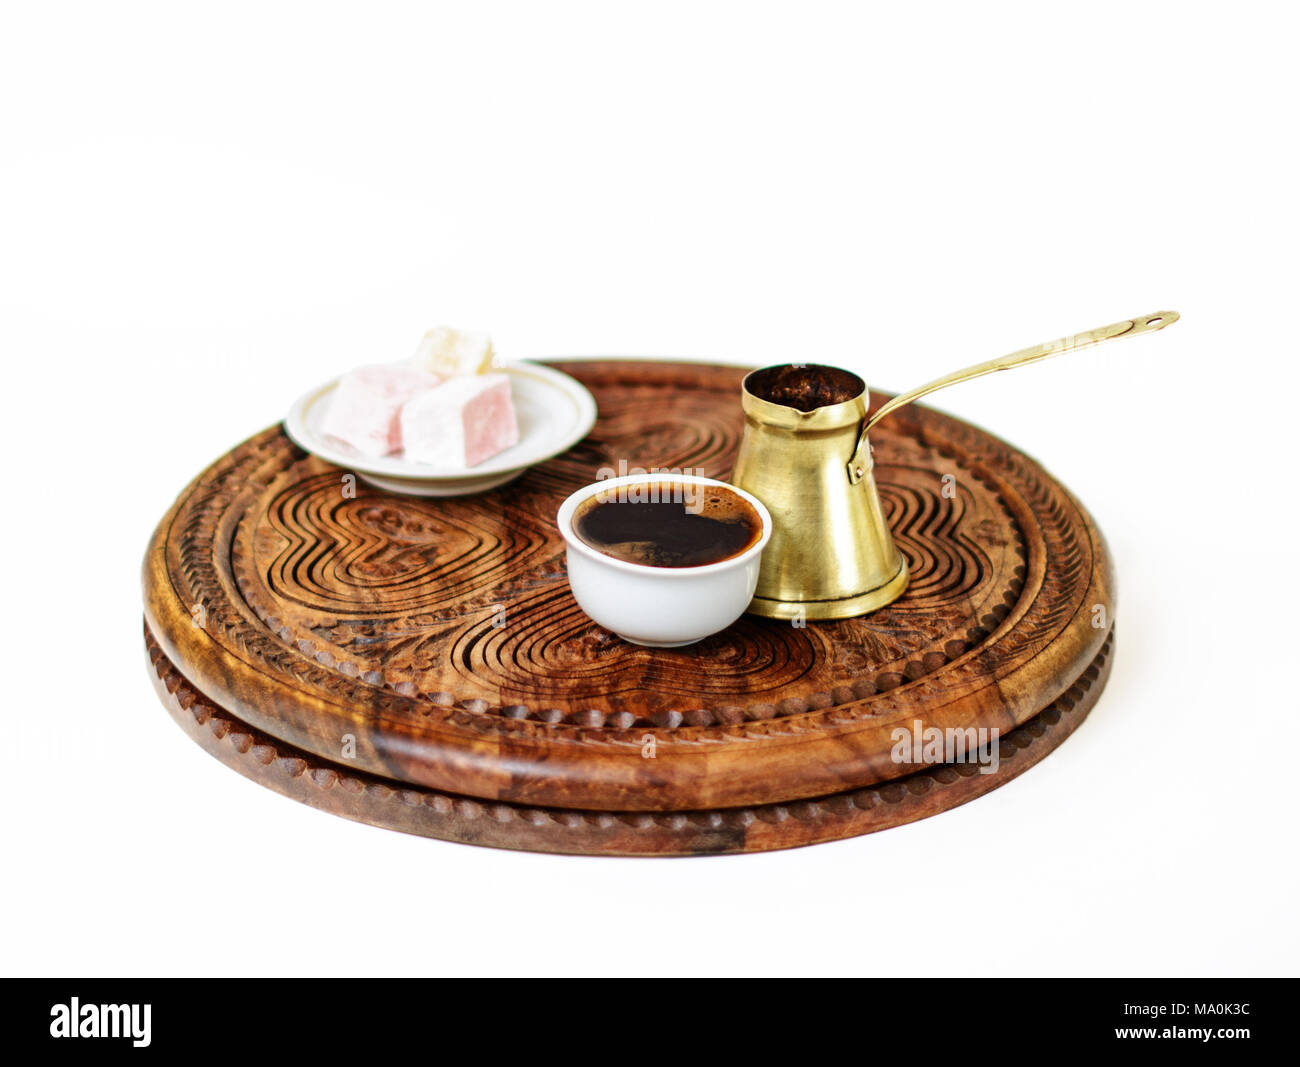 Turkish coffee served  in a traditional manner in a fildzan. It was made in the brass cezve, served with a few cubes of rahat lokum as a sweet snack. - Stock Image